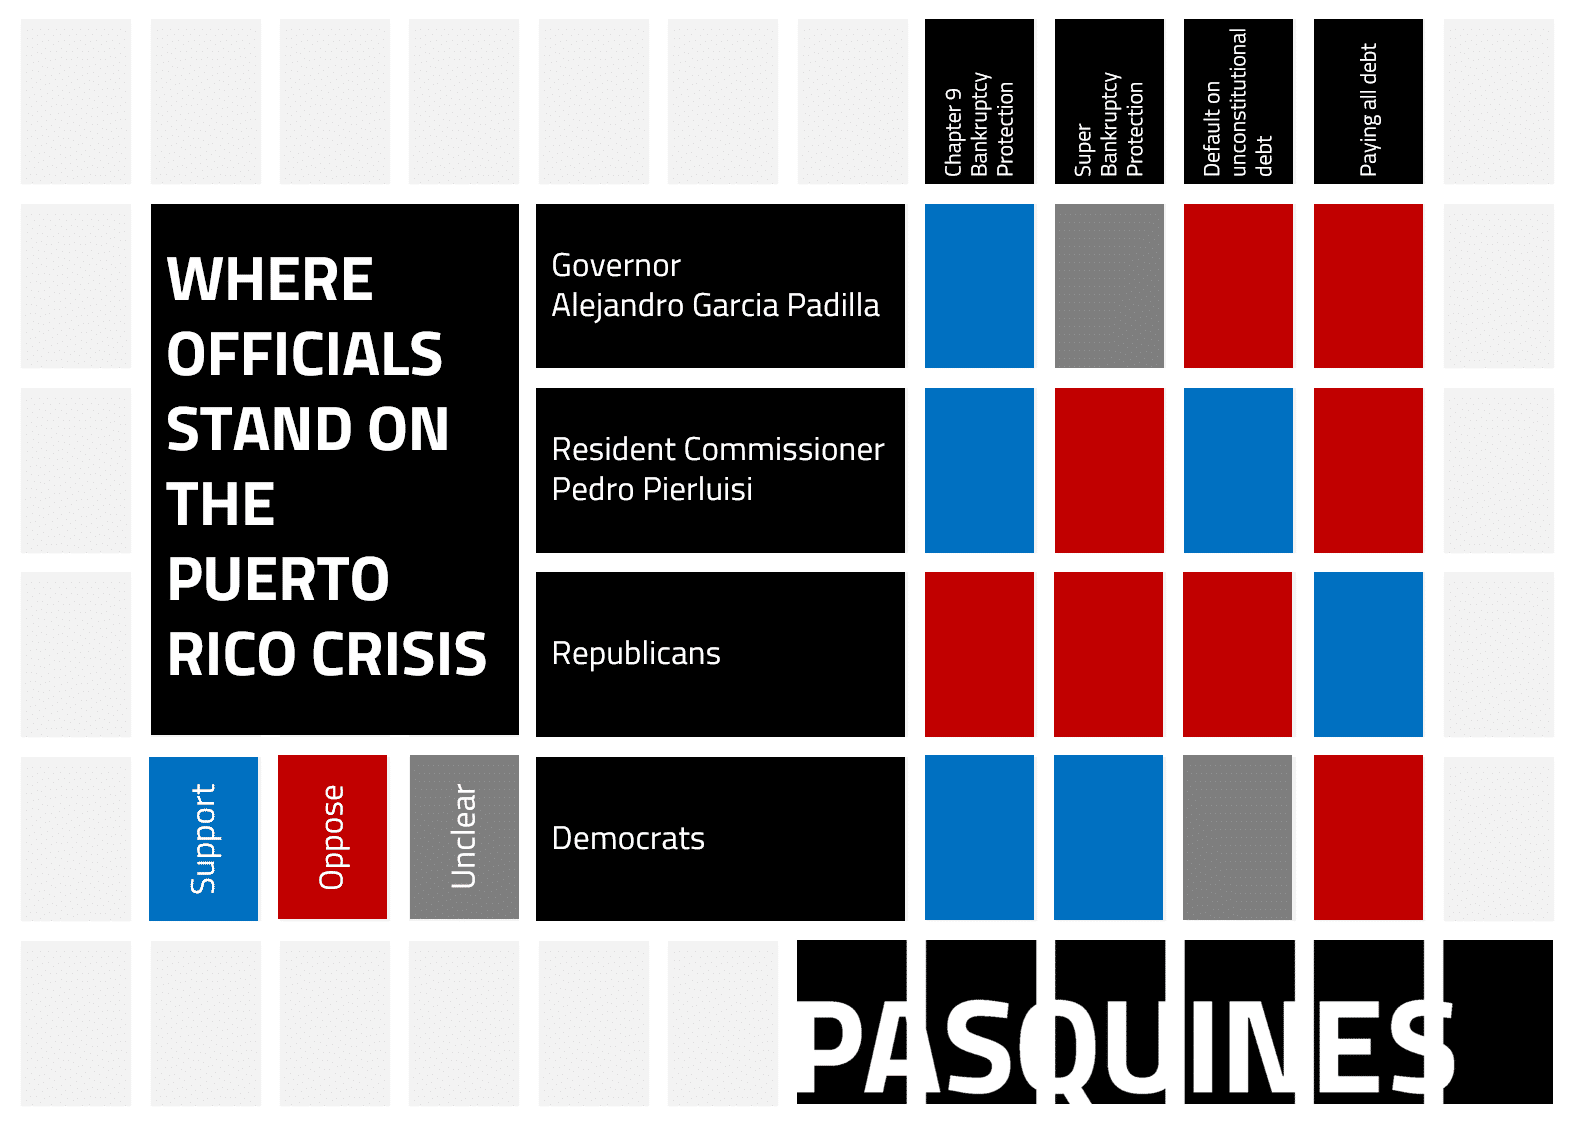 The different positions involving the Puerto Rico economic crisis, visualized